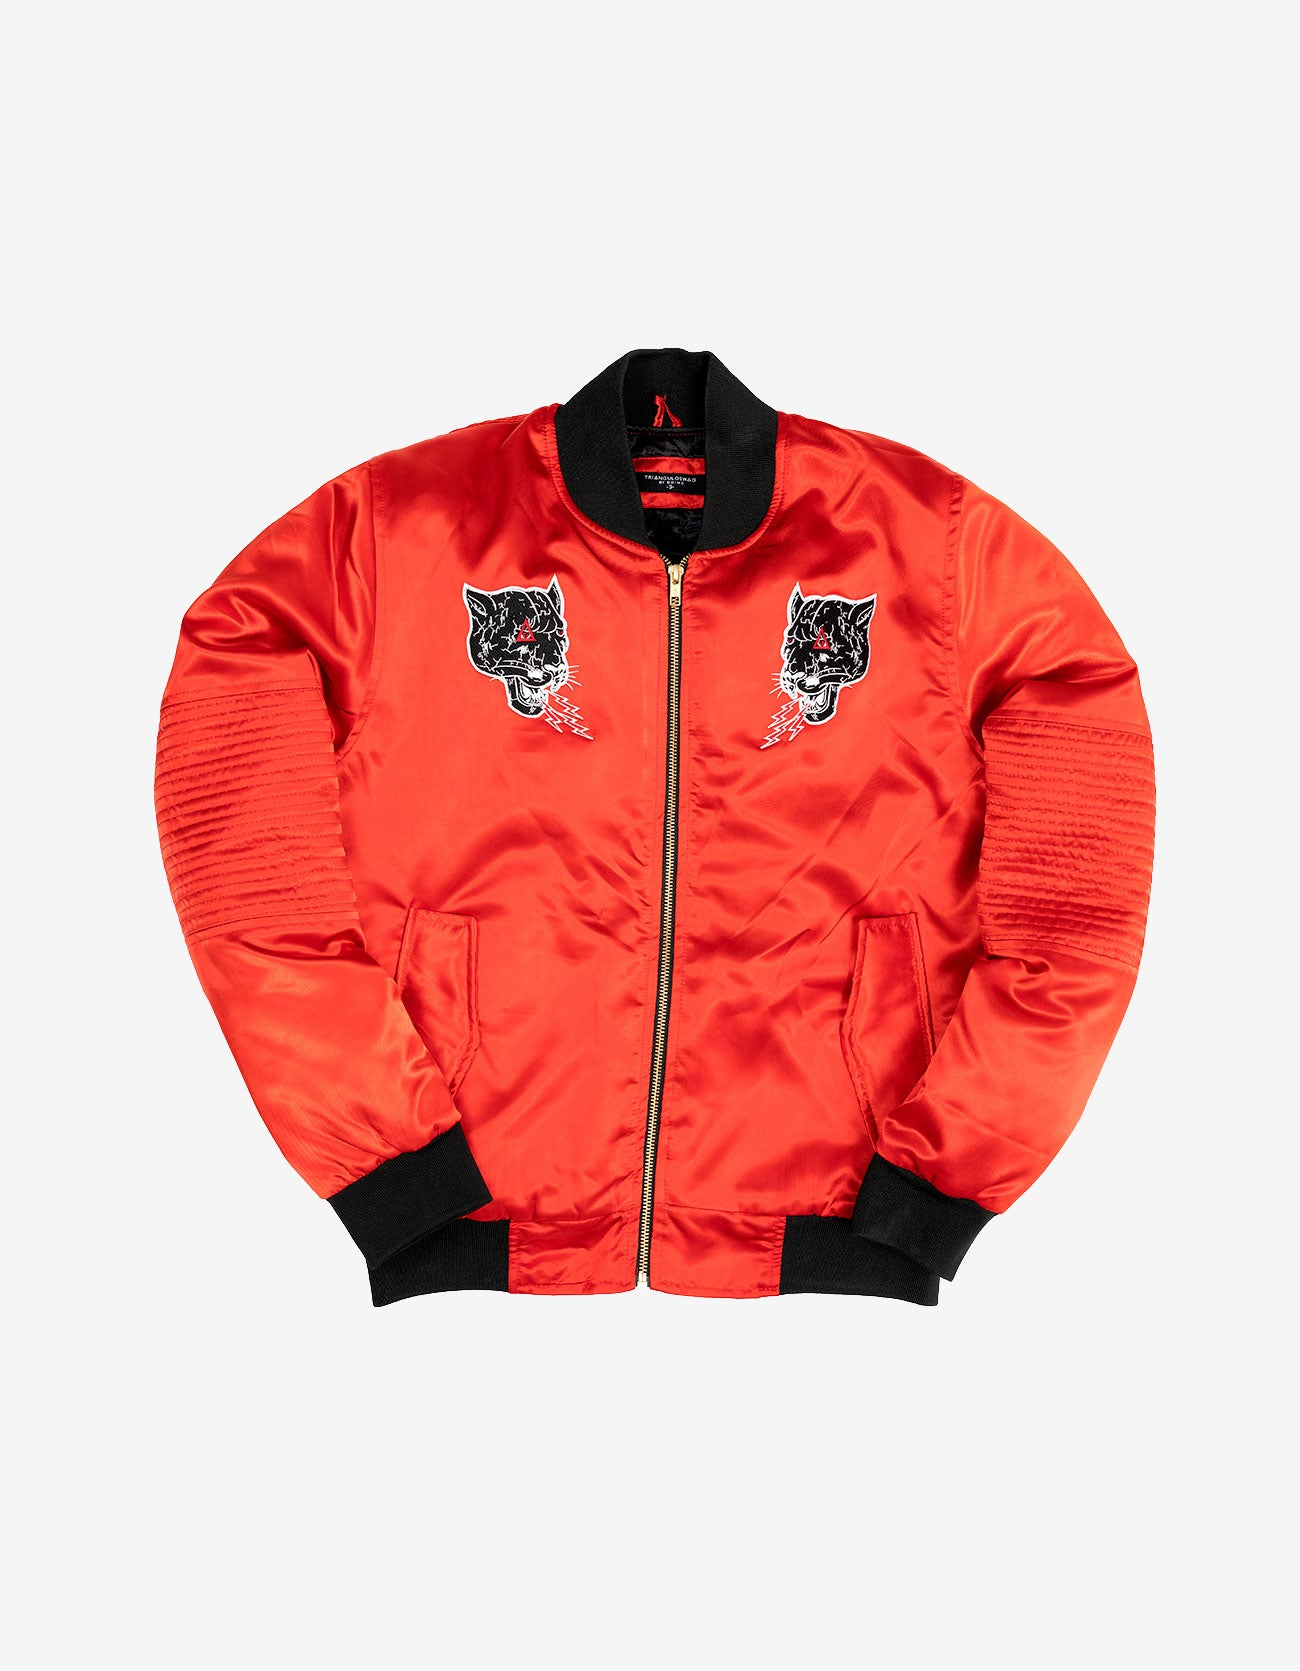 PANTHER RED LIMITED EDITION JACKET - Triangulo Swag